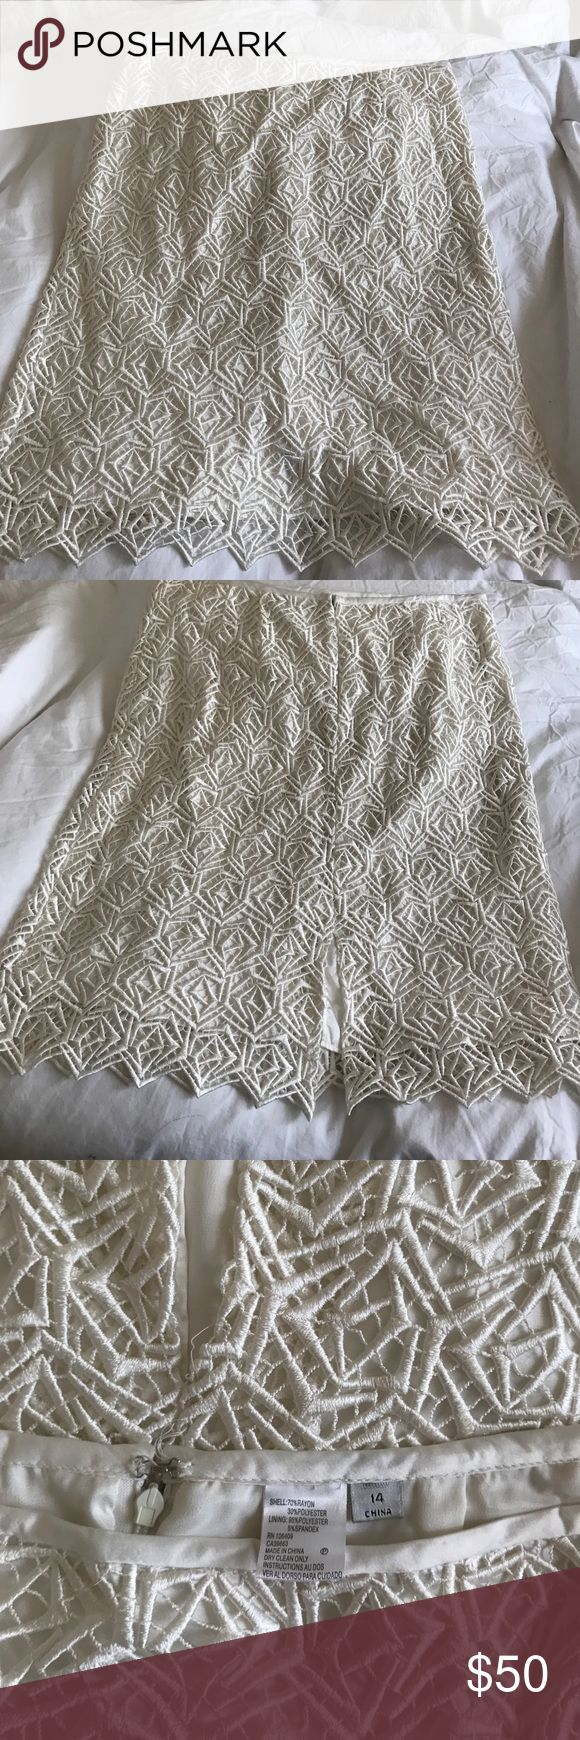 Gorgeous Tahari cream lace skirt. Gorgeous Tahari Cream Lace Skirt. Fully lined.  Slit in the back. Bought with the jacket but keeping the jacket. Sweater can be worn with a pretty sweater or cardi. Tahari Skirts Pencil